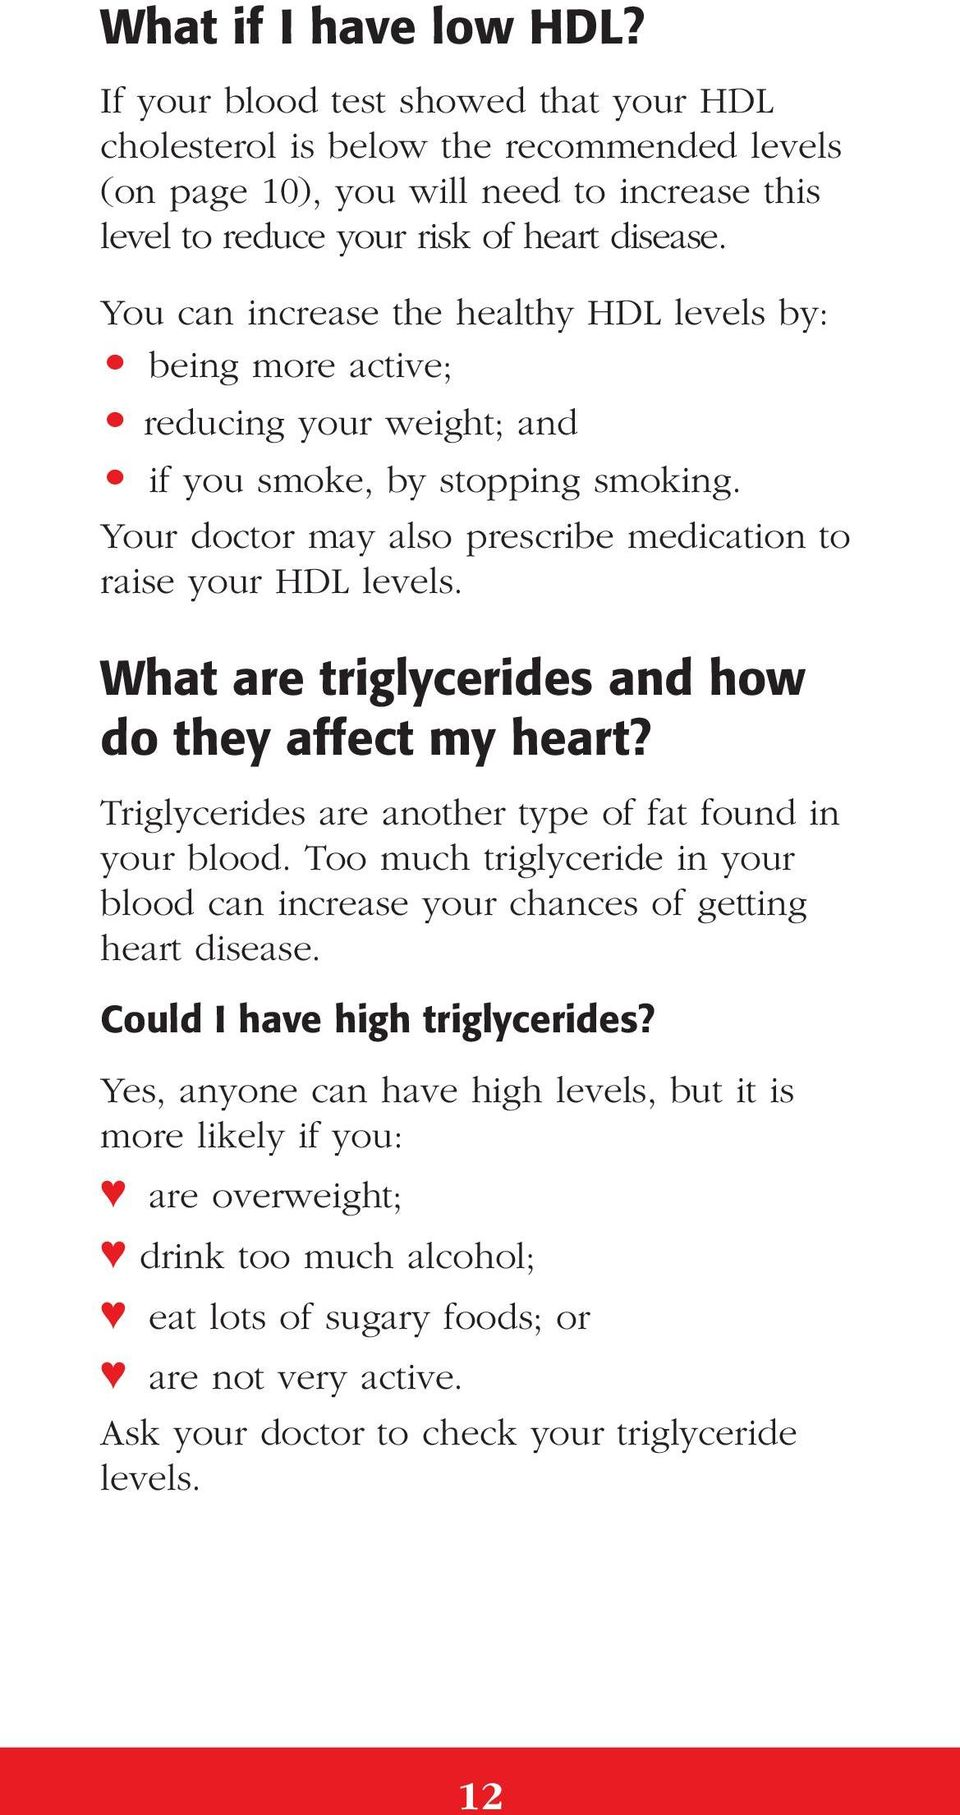 What are triglycerides and how do they affect my heart? Triglycerides are another type of fat found in your blood.